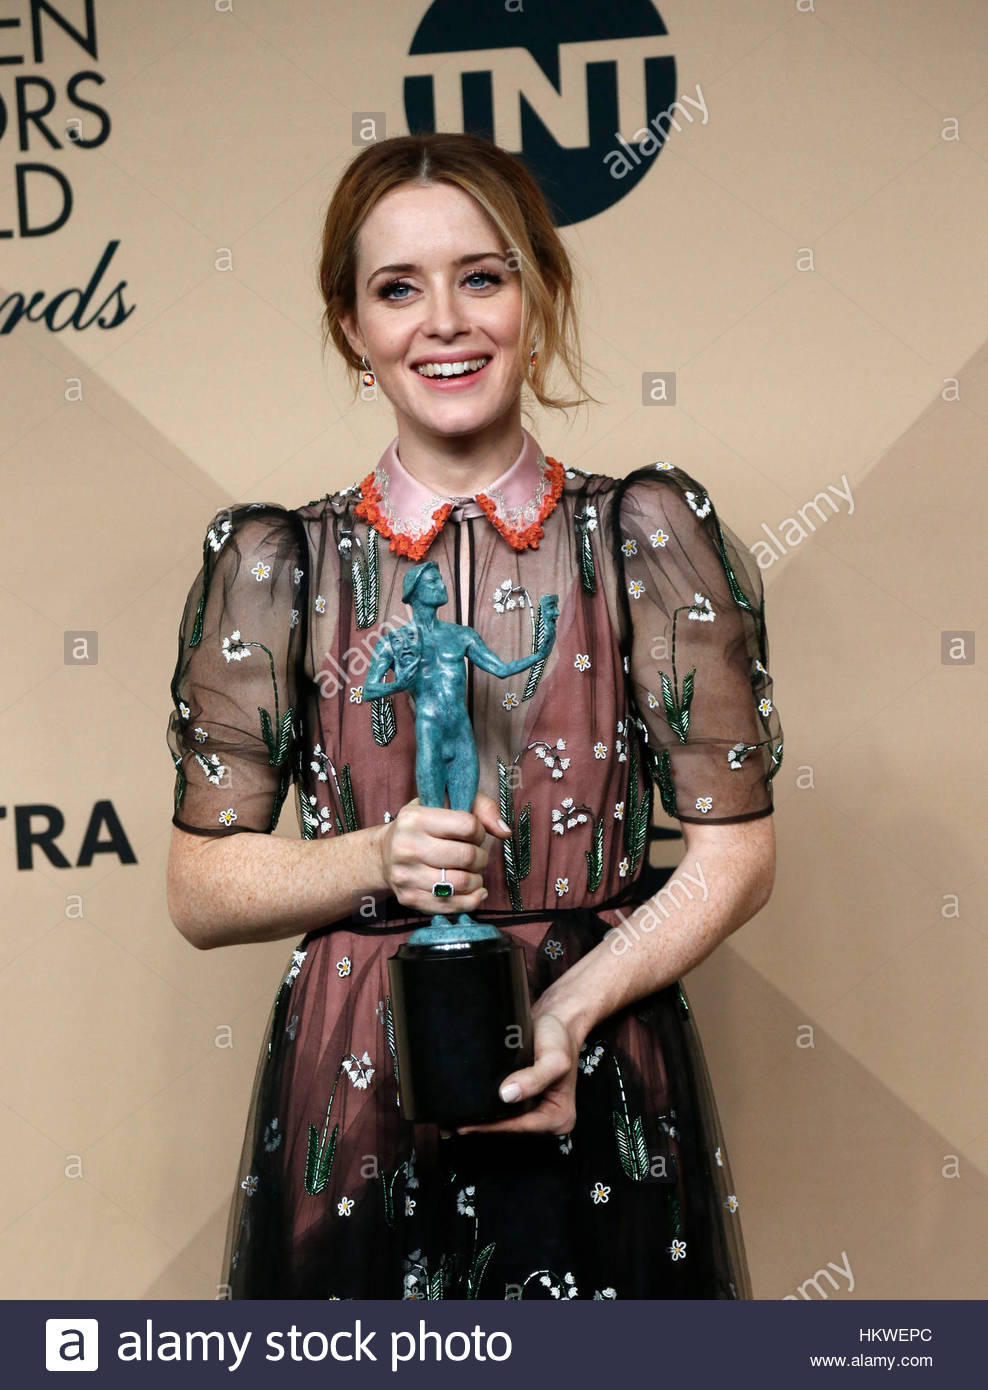 Actress Claire Foy poses with the award she won for Outstanding Performance by a Female Actor in a Drama Series Stock Foto